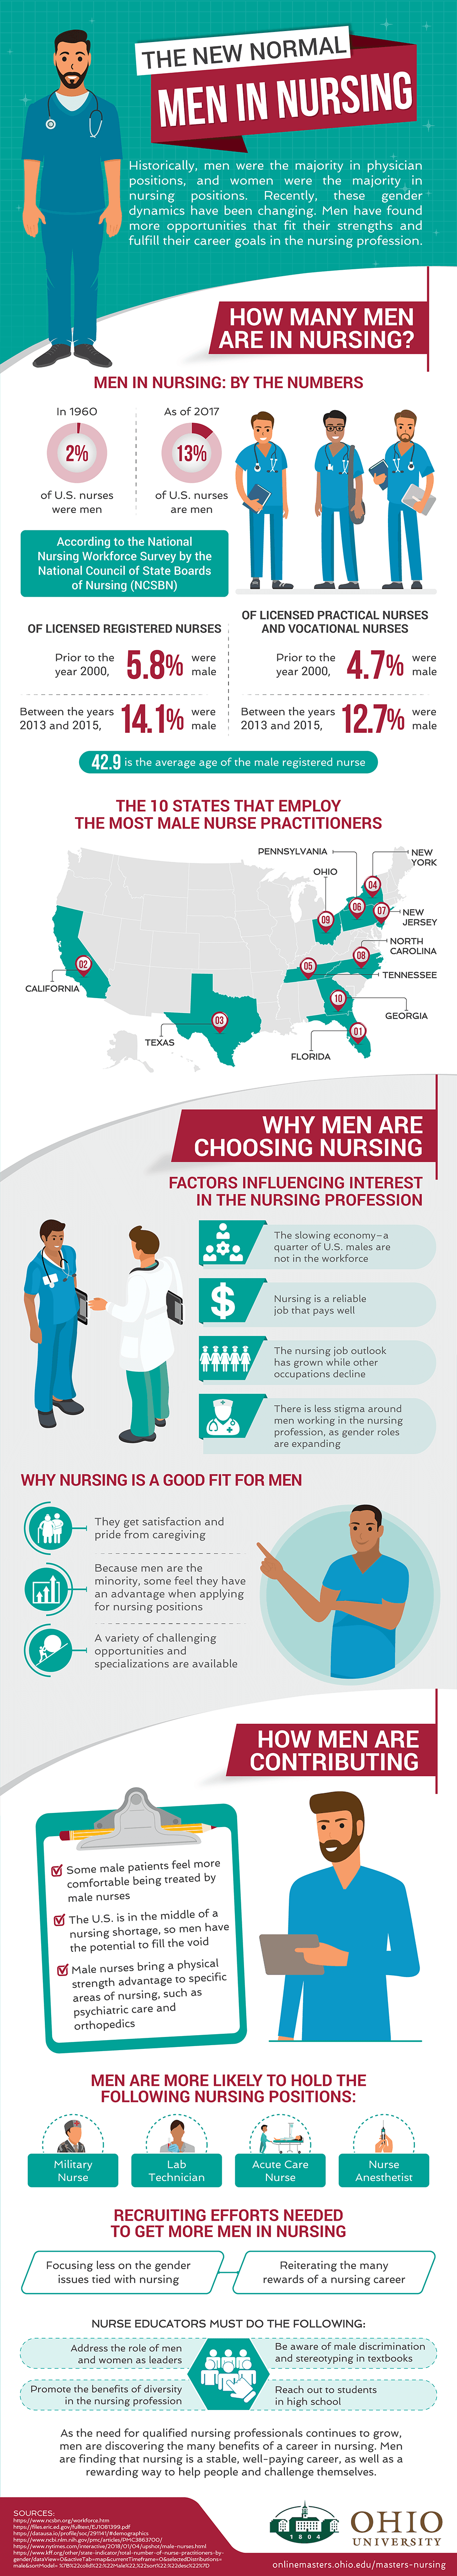 How an increasing number of men are turning to the nursing profession to find fulfilling jobs in the healthcare industry.